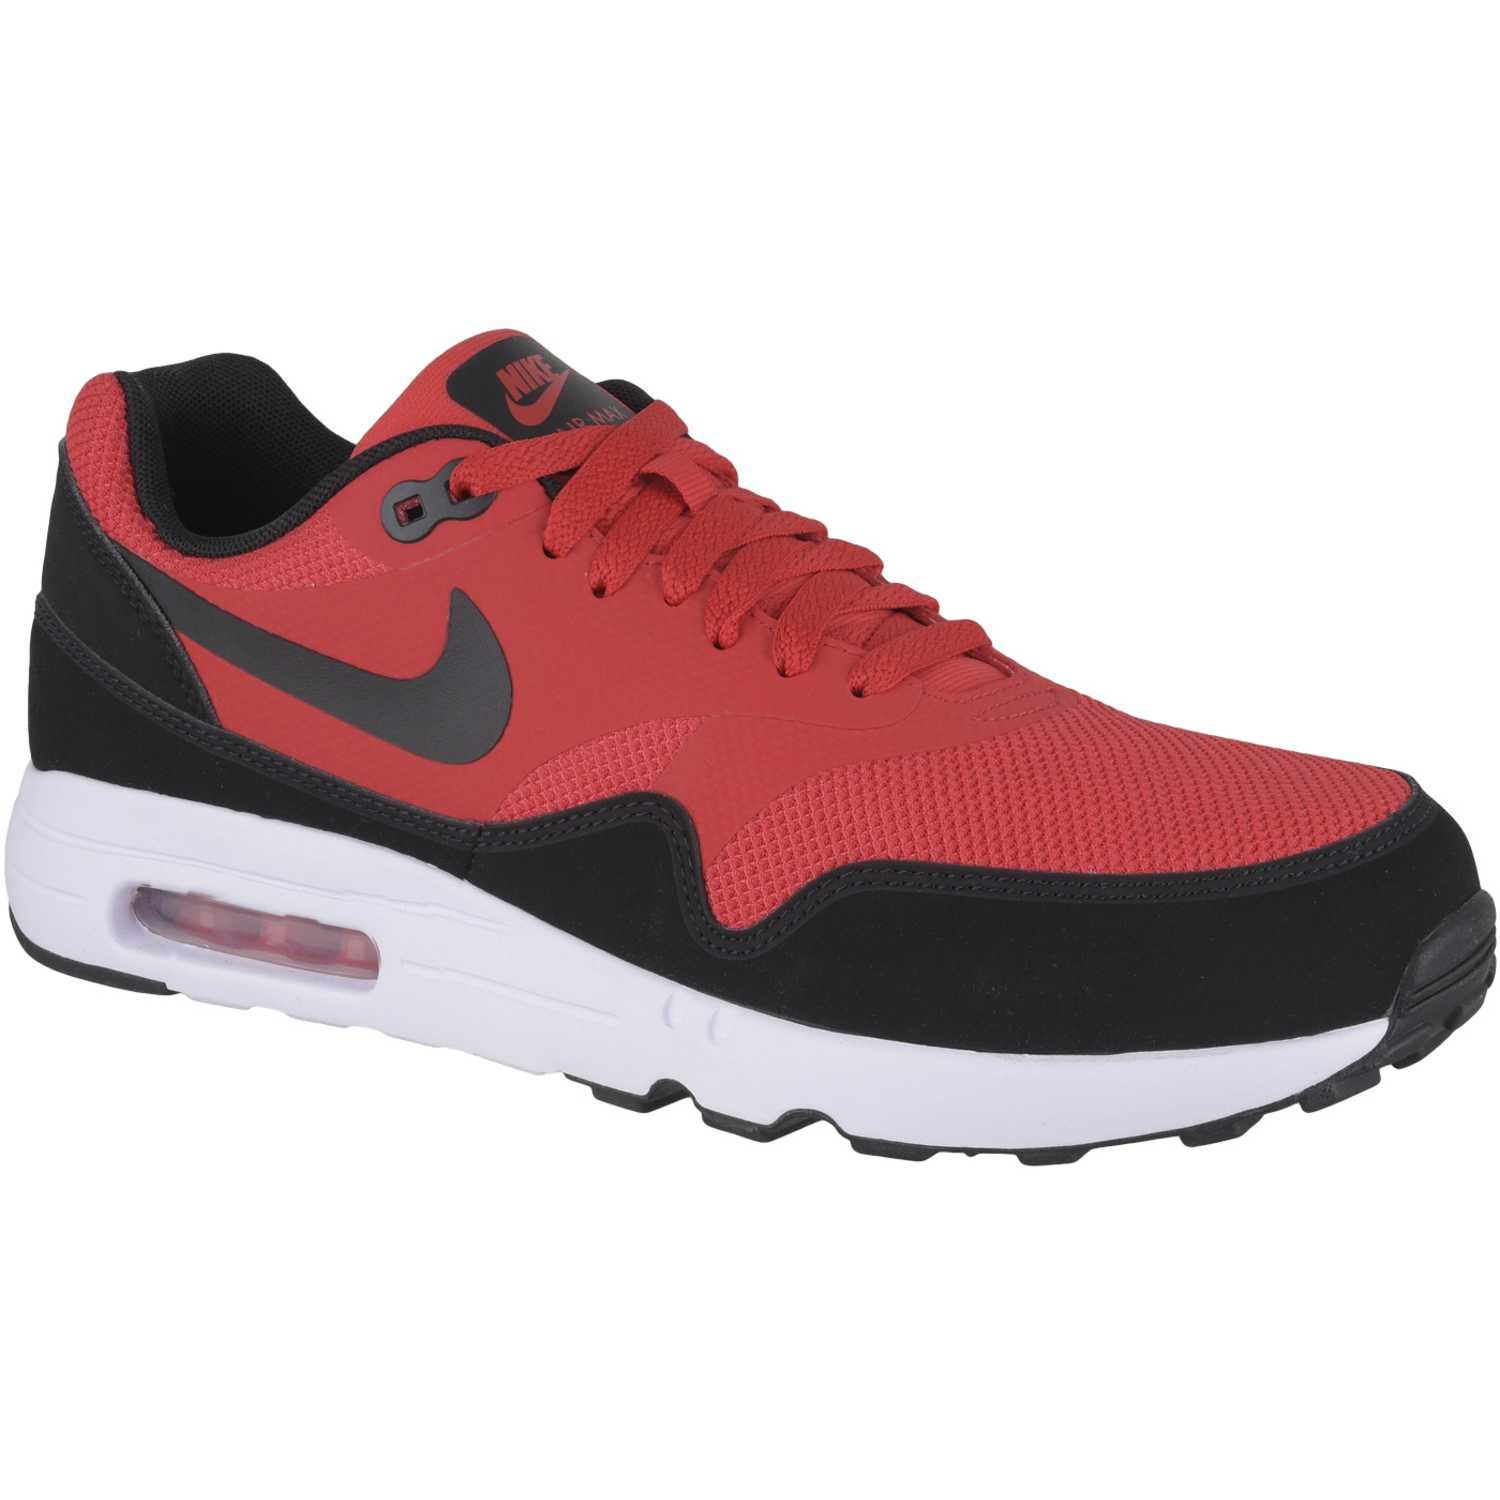 super popular 90366 ea4ad Zapatilla de Hombre Nike Rojo  negro air max 1 ultra 2.0 essential